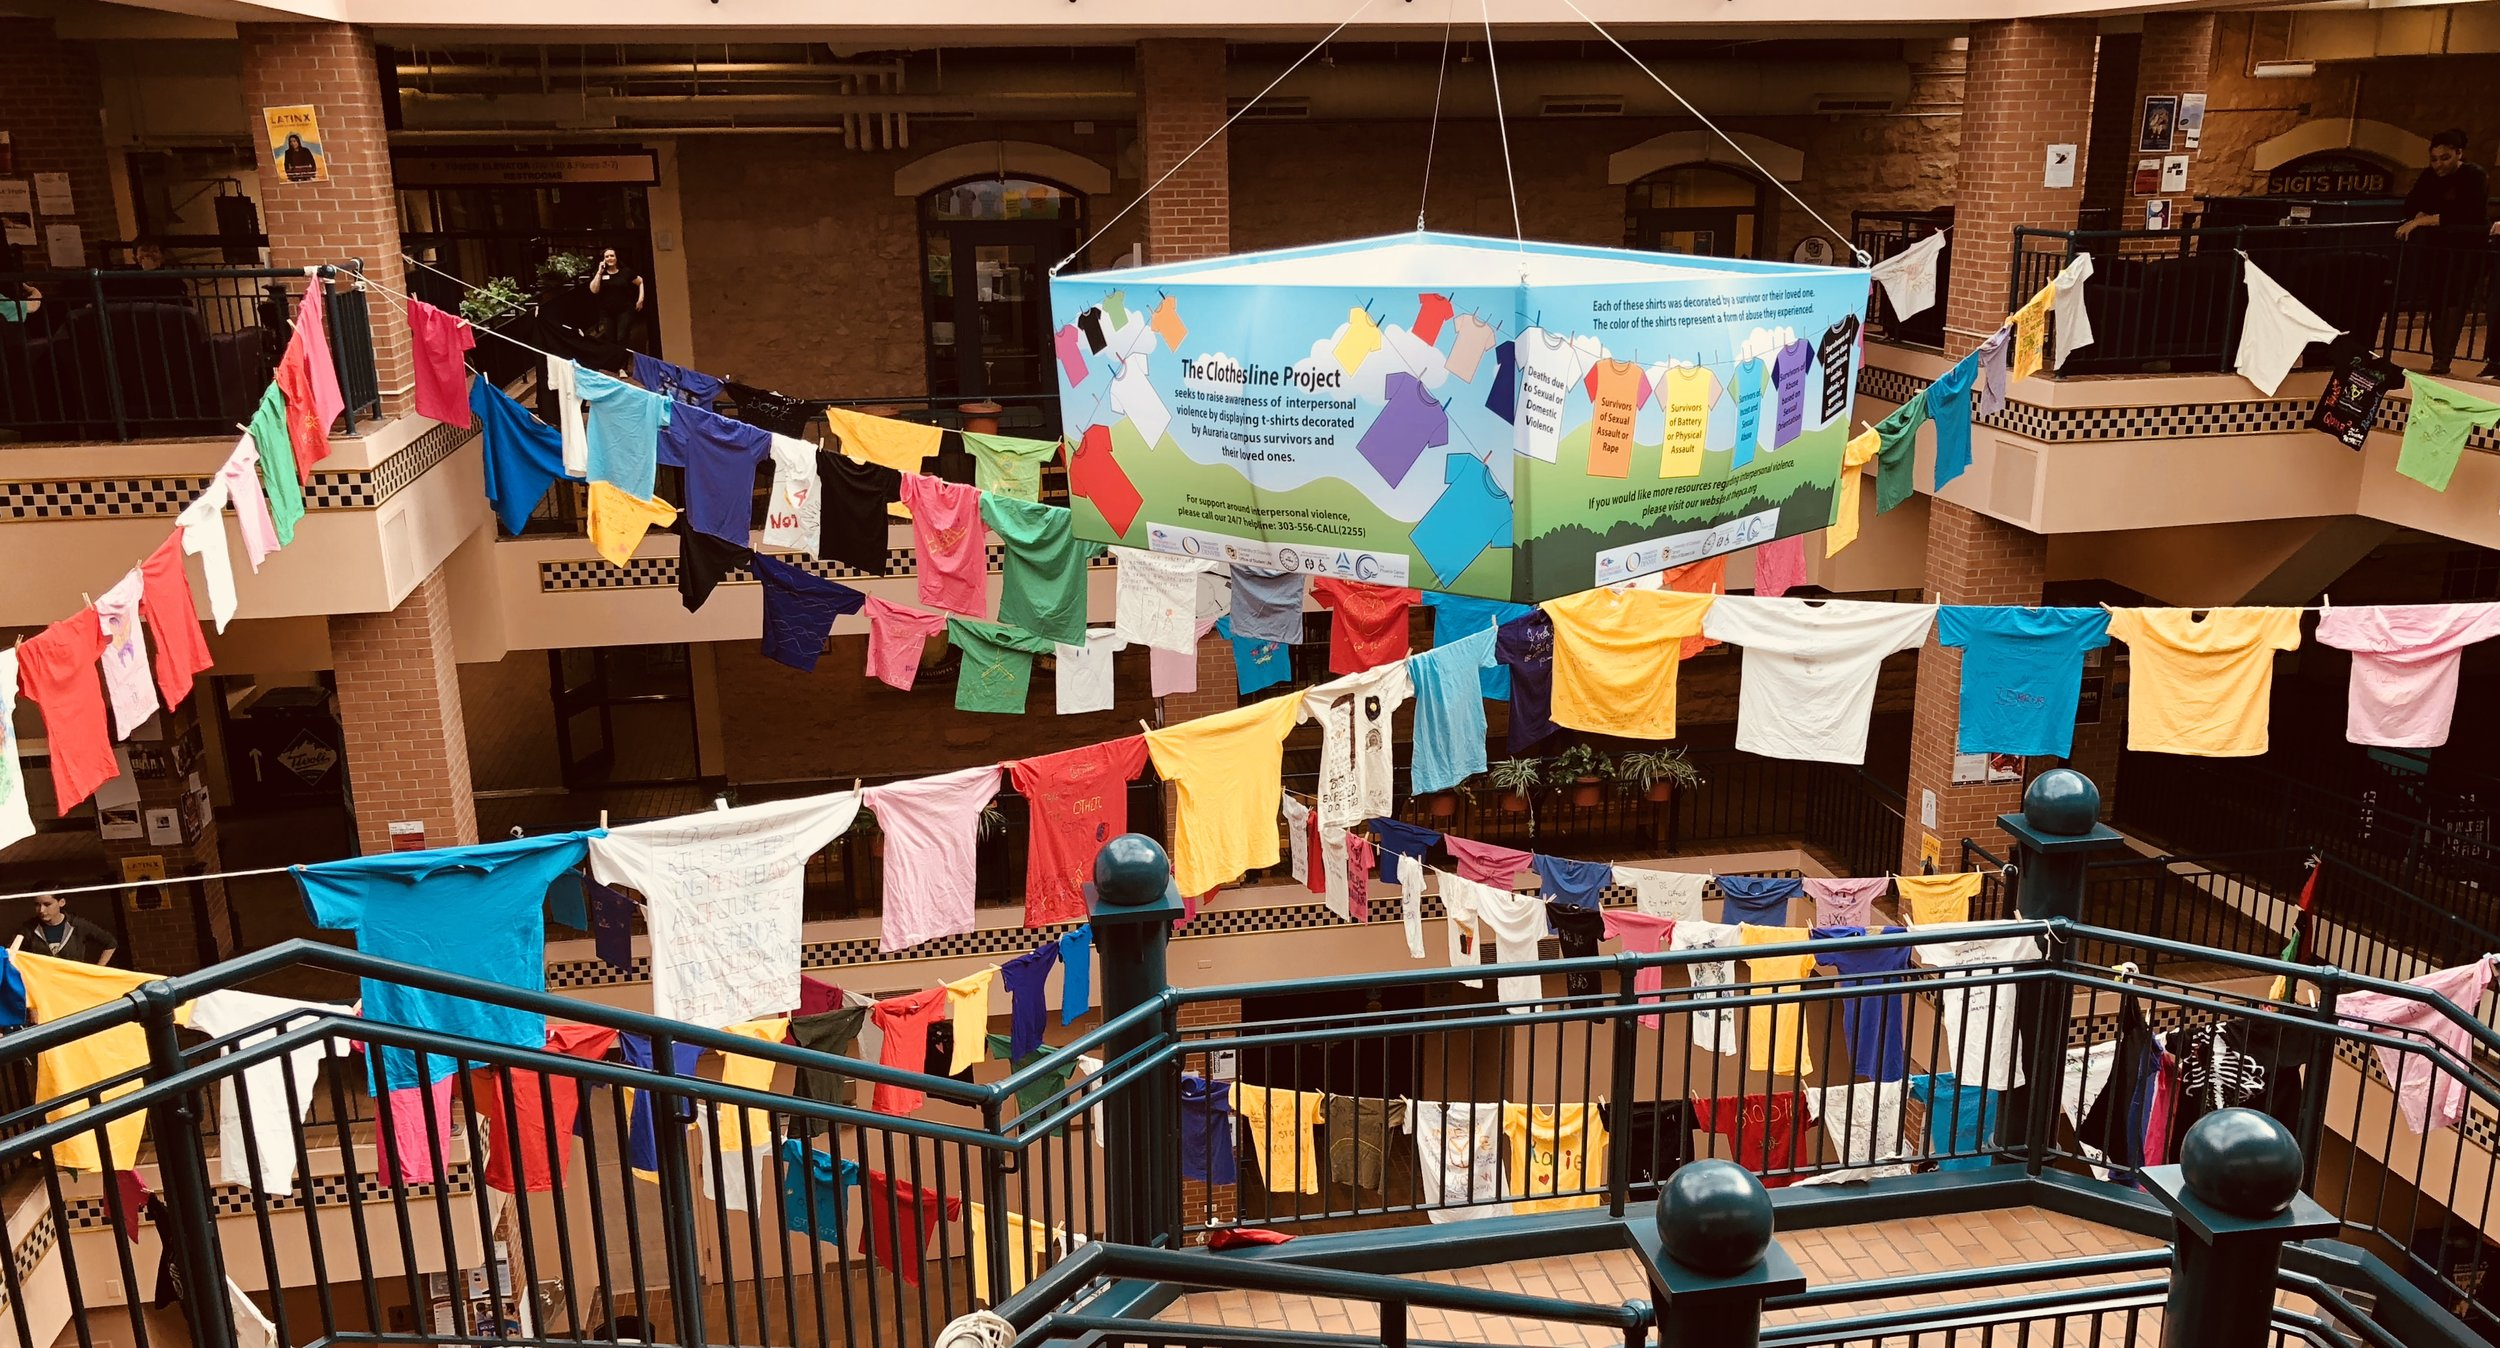 Auraria Clothesline Project in the Tivoli Student Union. 2018.